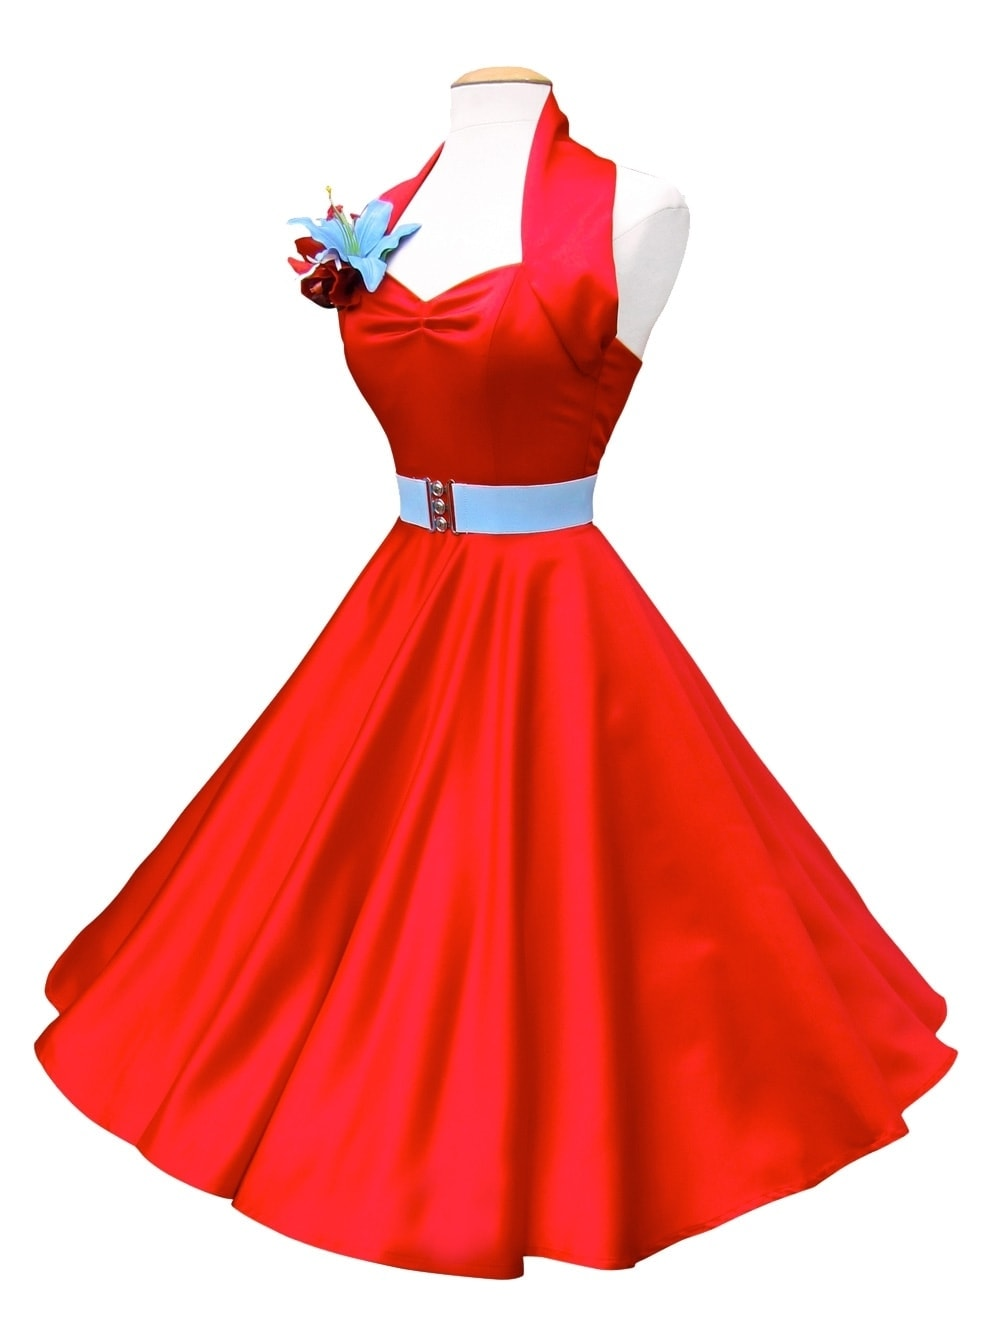 f628507bee6 1950s Halterneck Red Duchess Dress from Vivien of Holloway